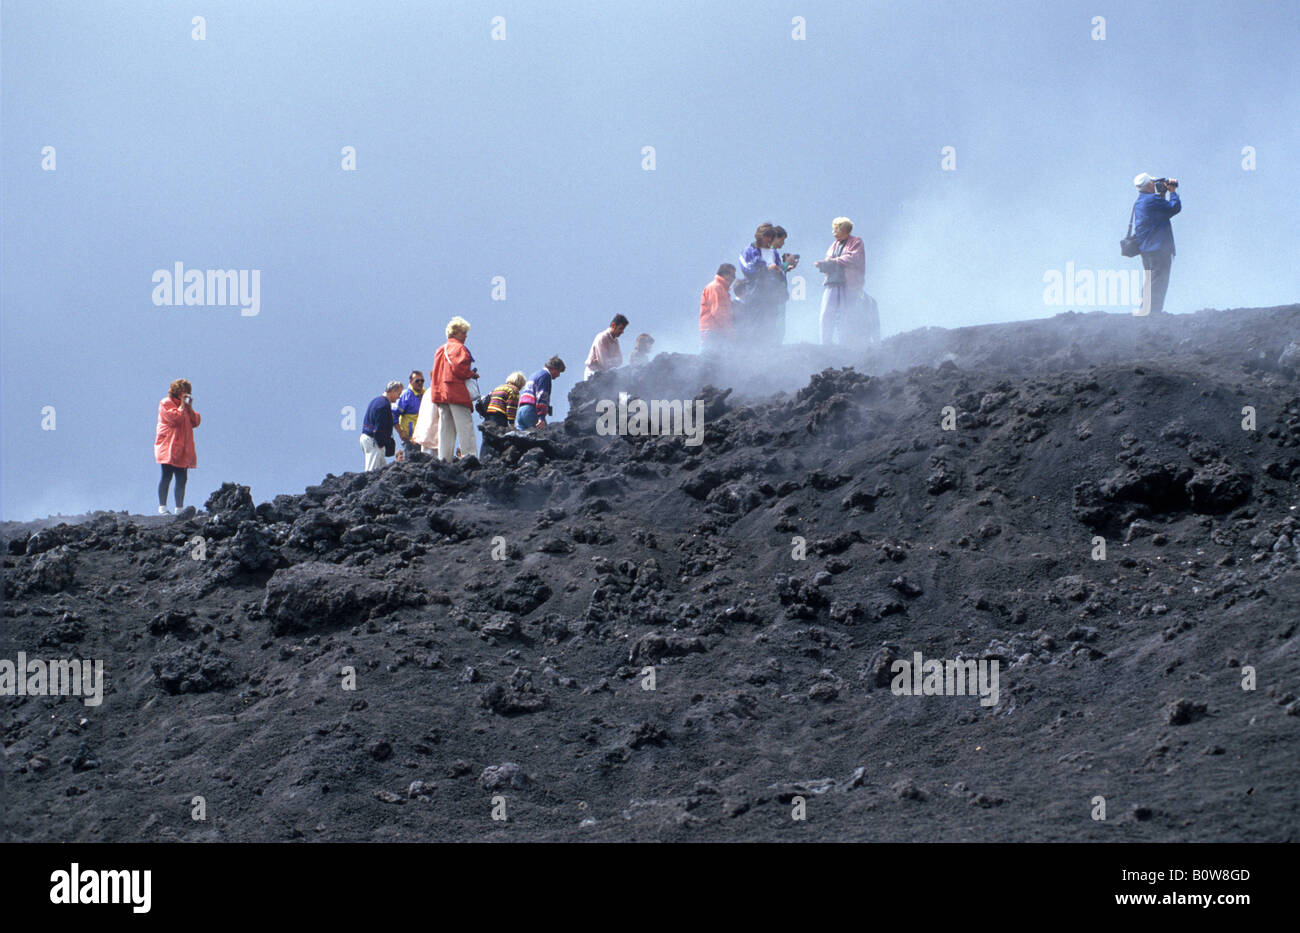 Mount Etna, guided tour in the lava fields created by the 1989 eruption, Sicily, Italy, Europe - Stock Image